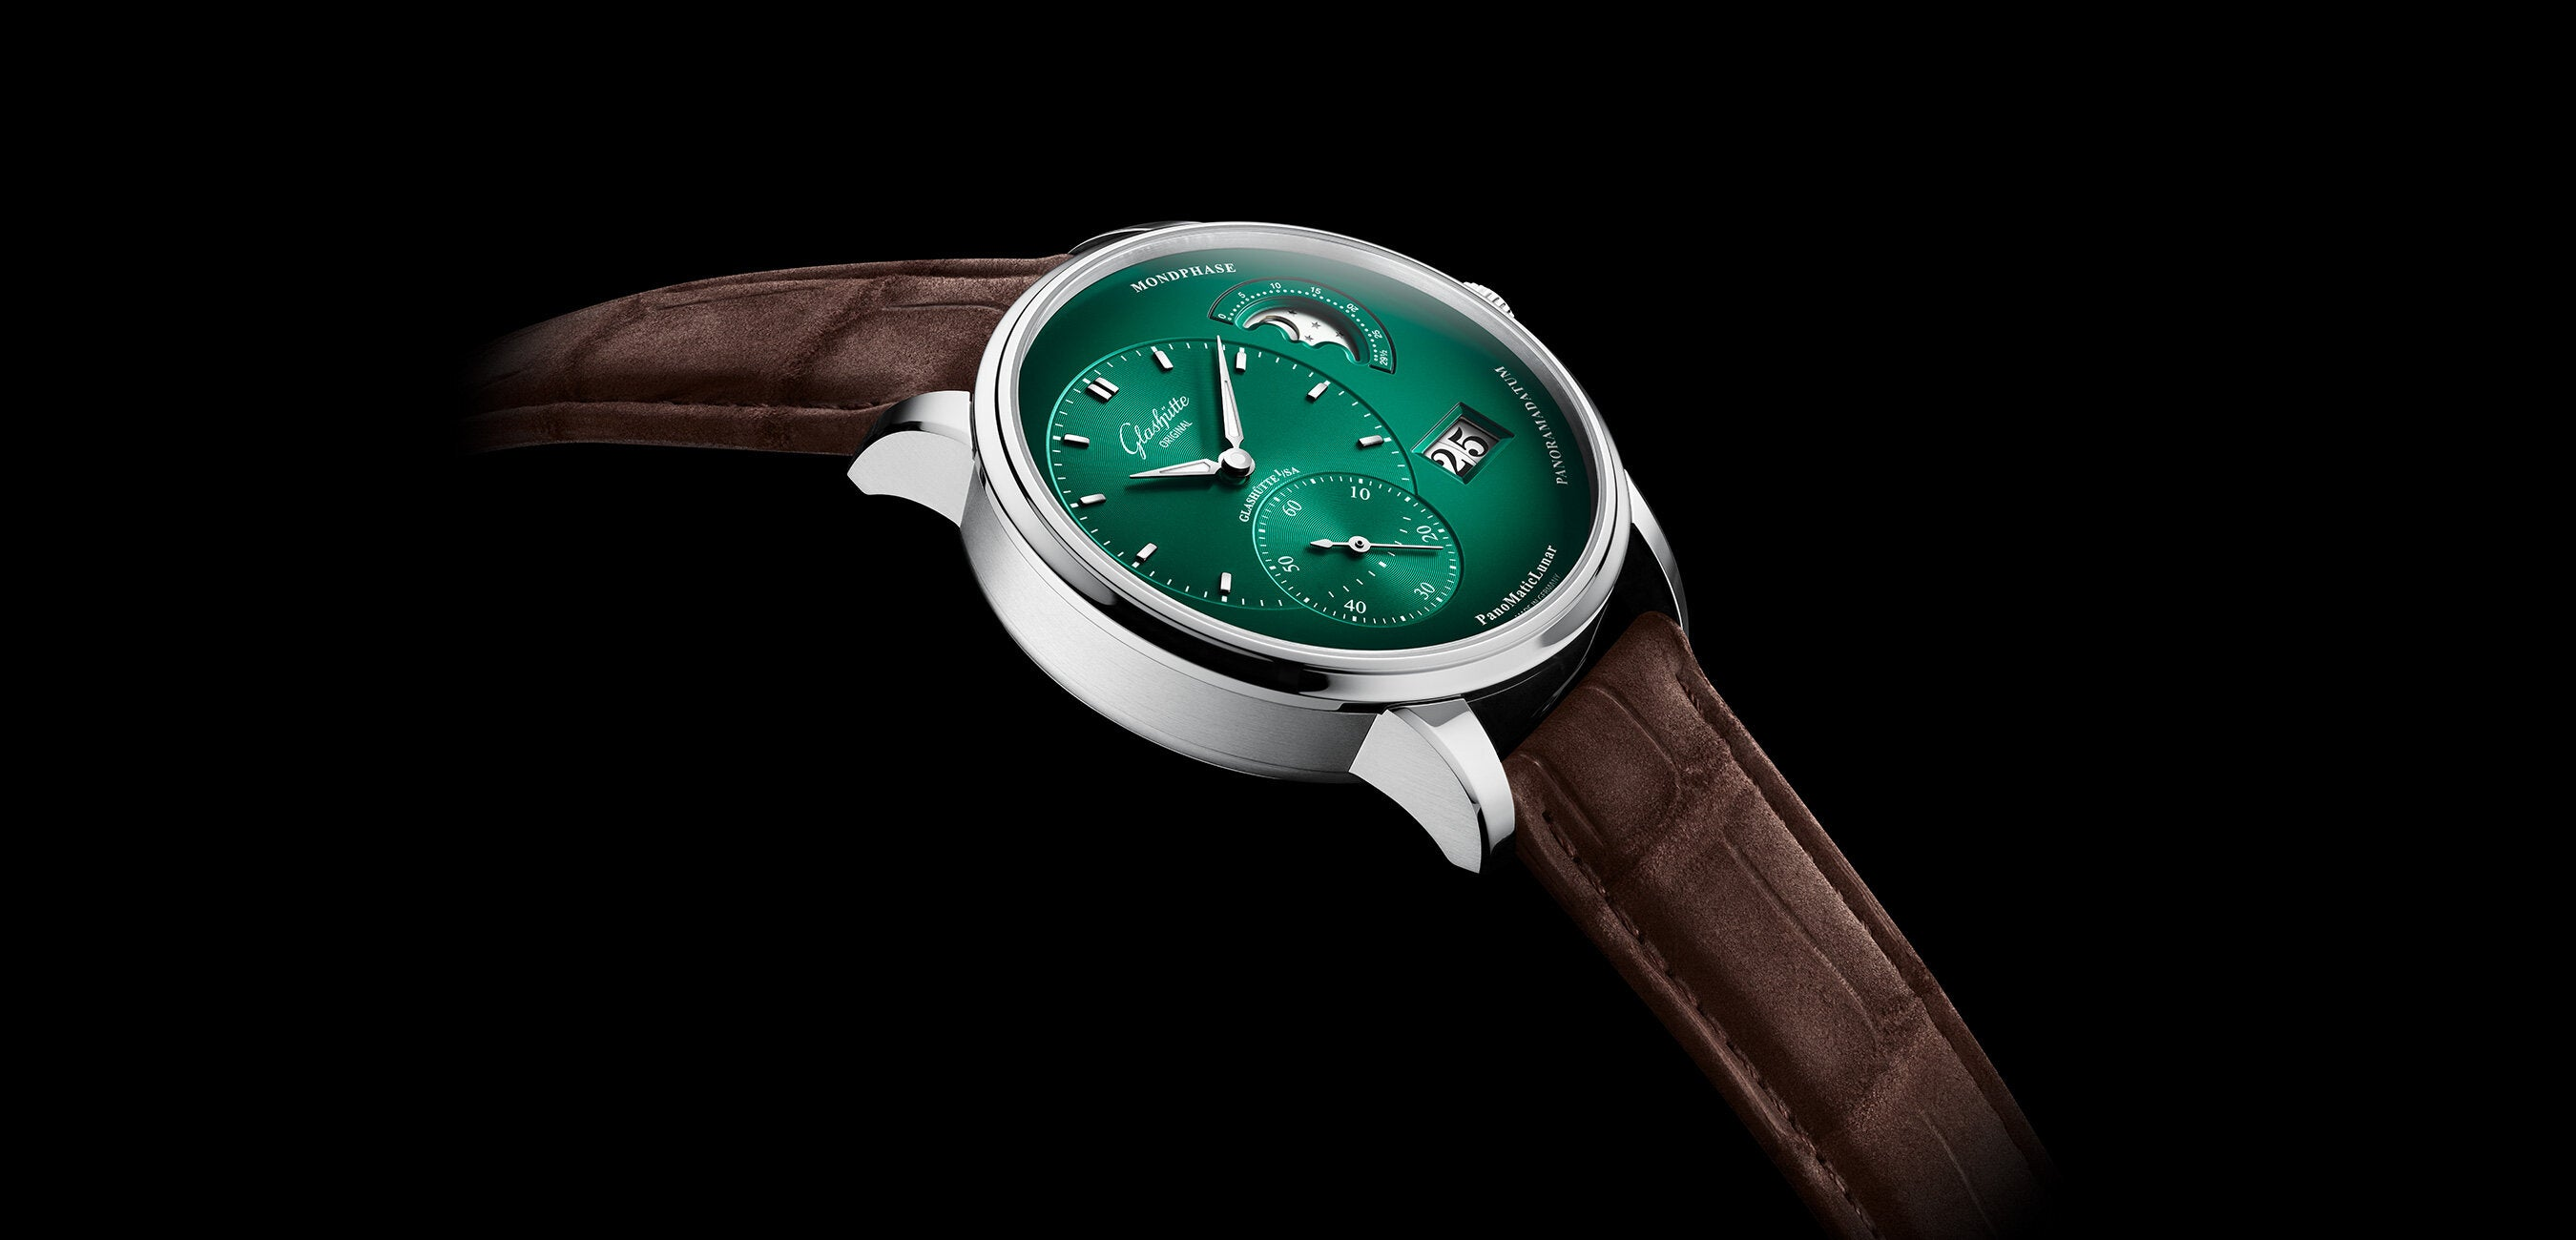 Glashütte Original presents exciting new Pano with deep green dial